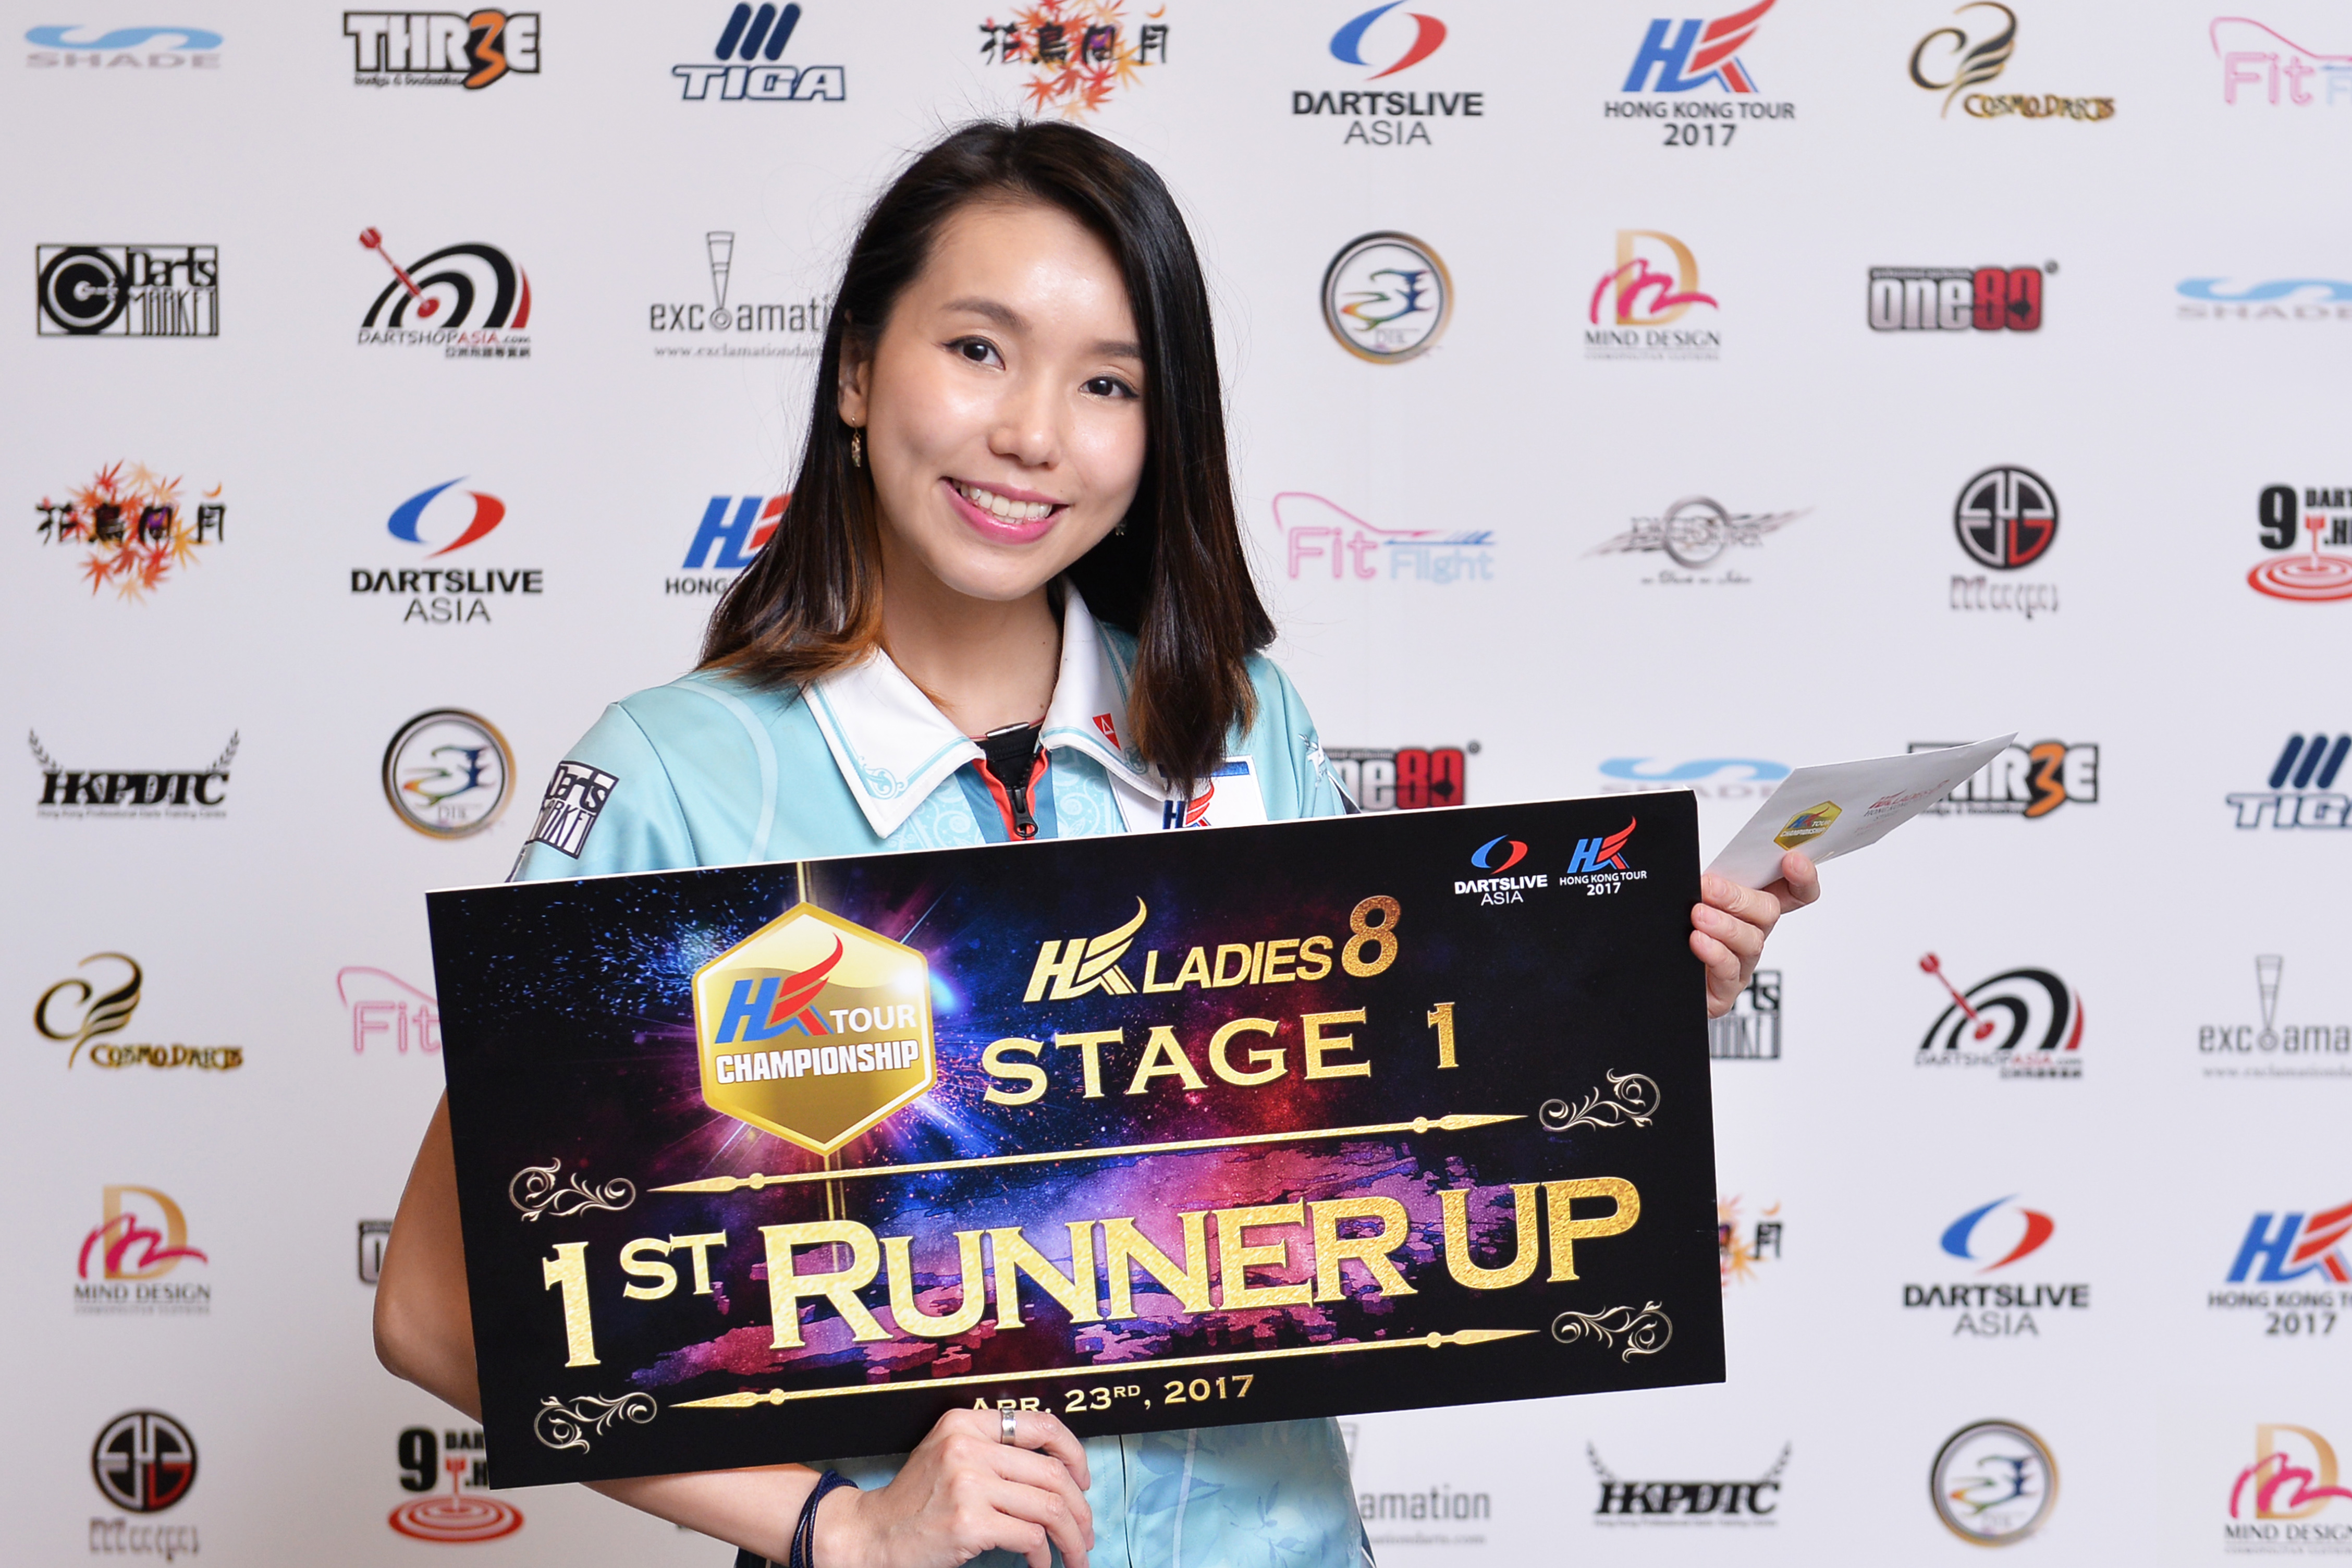 HKTCS_2017_HKL8_Stage1_Result_CATHY_LEUNG